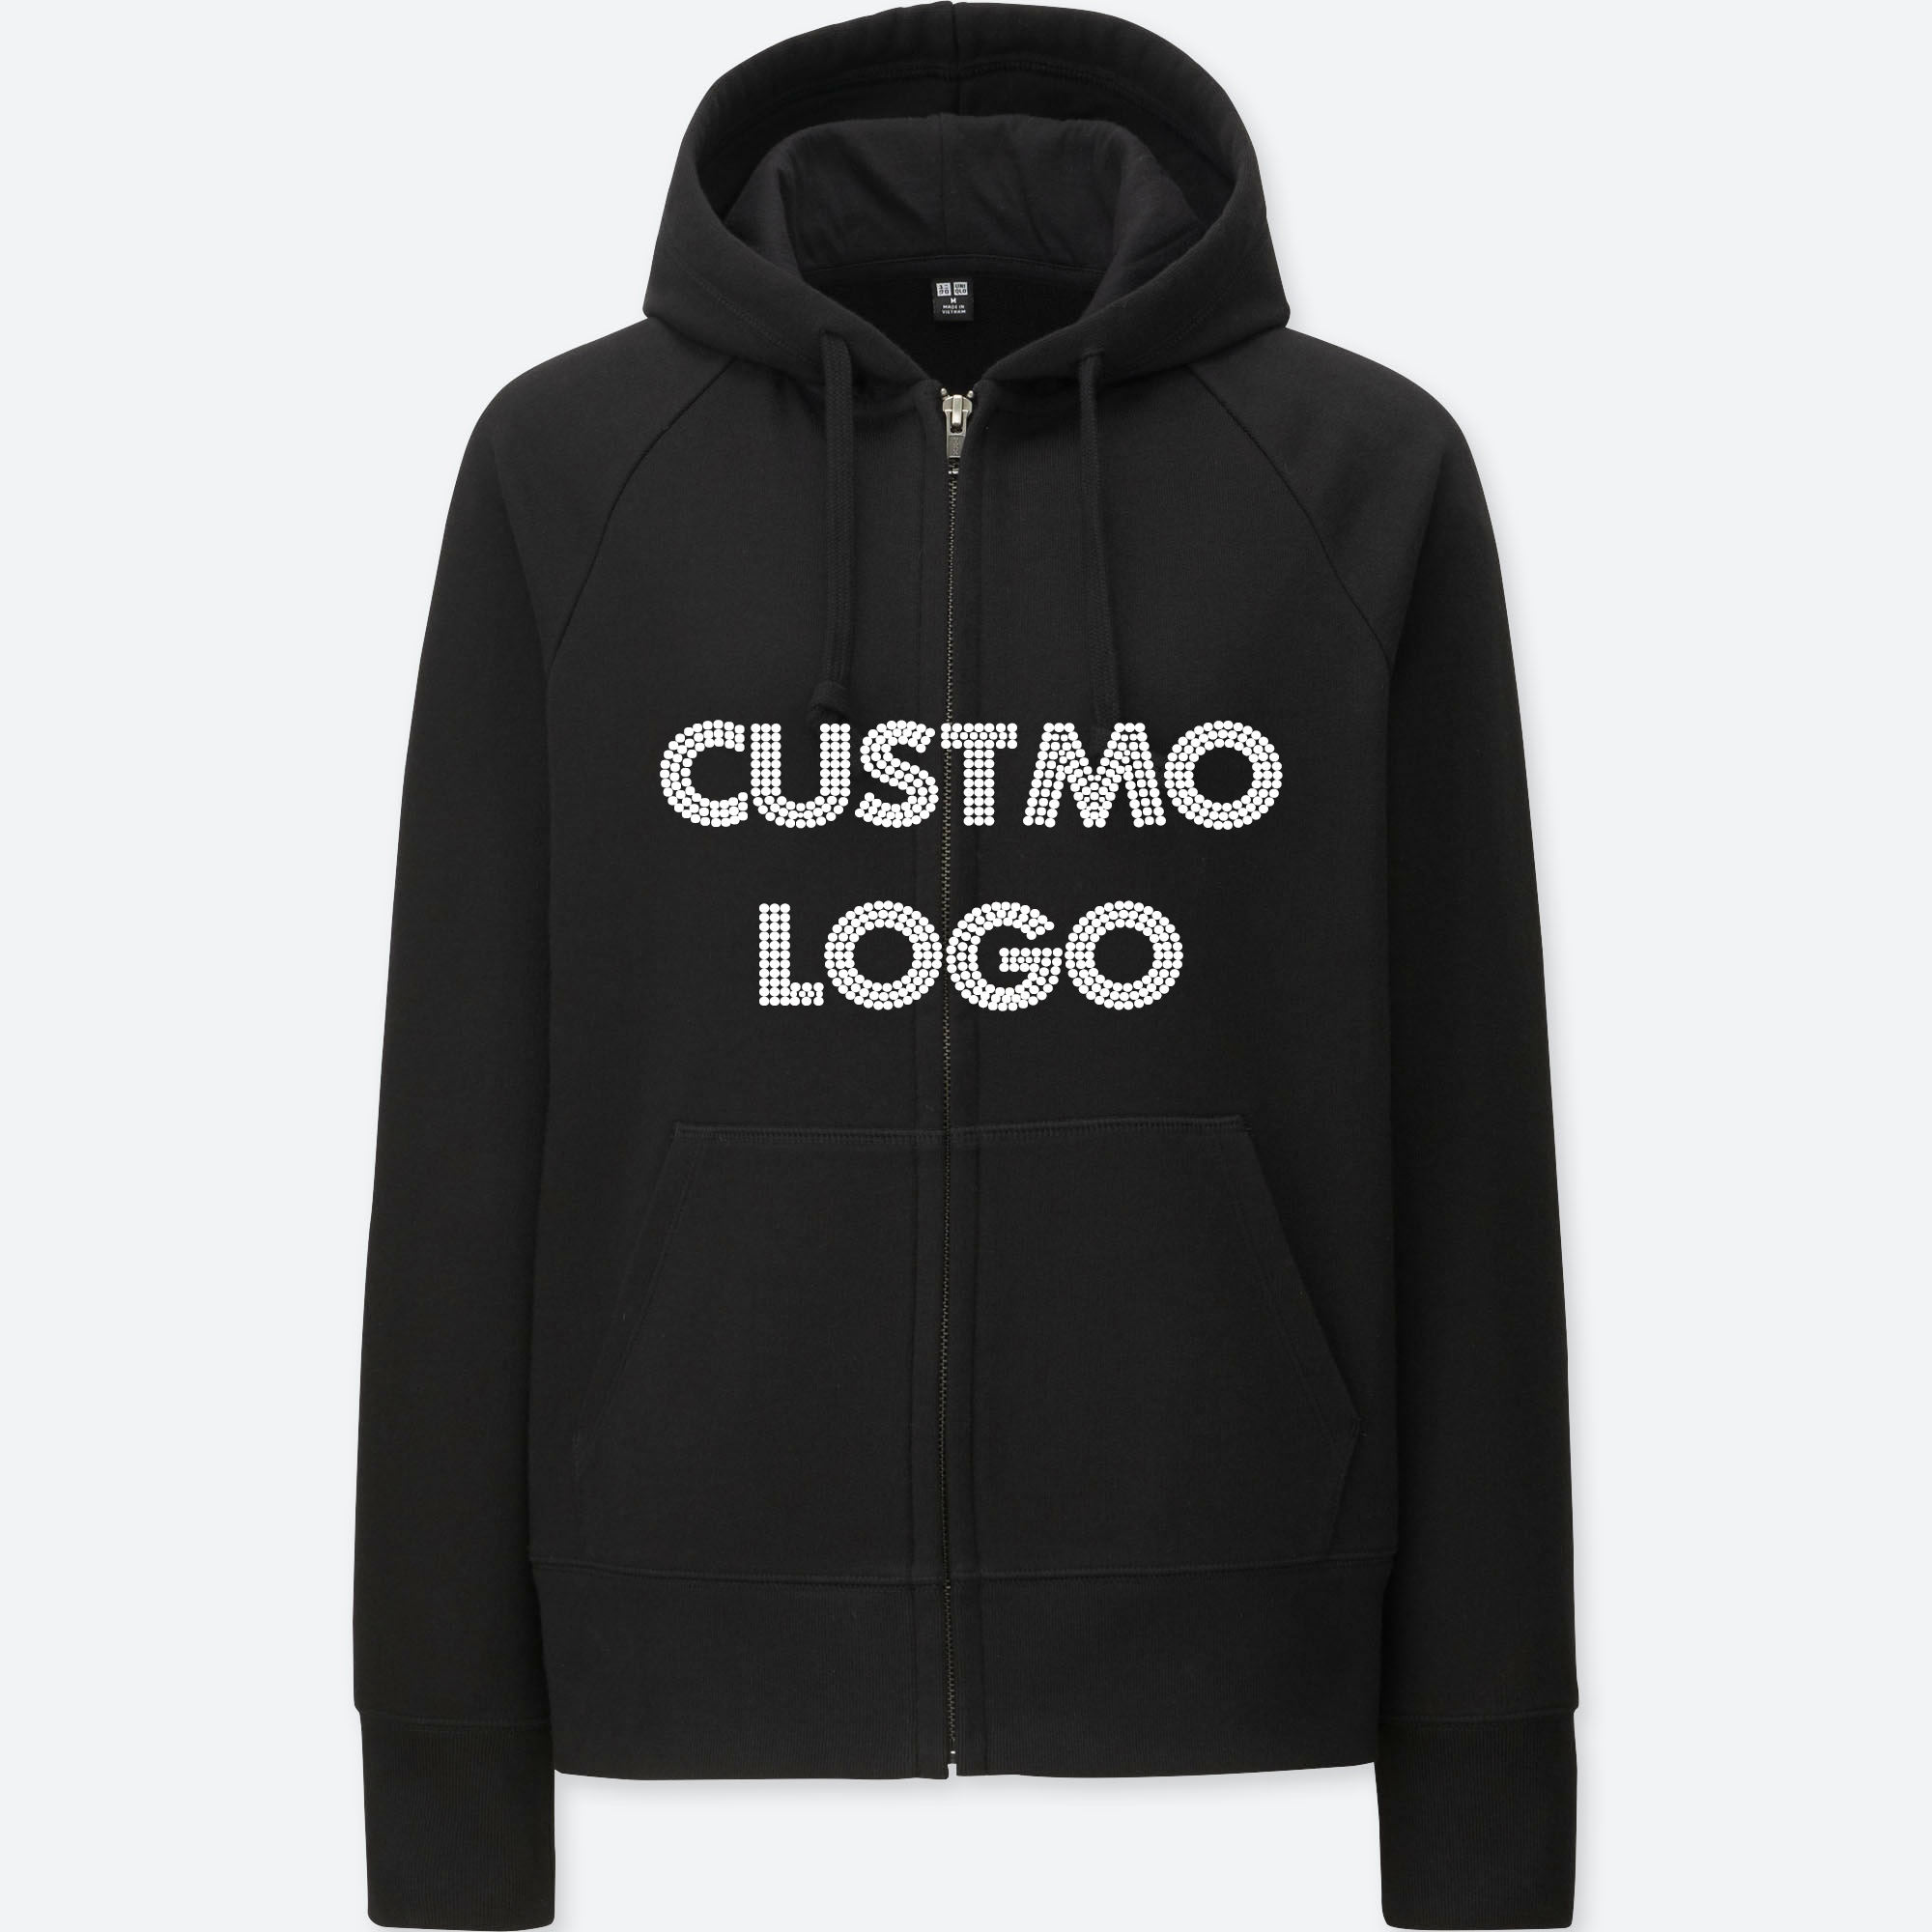 MOQ 1 pcs oversized hoodie black hoodie printing logo Custom letter unisex 100% cotton hoodies with rhinestones sweatshirts